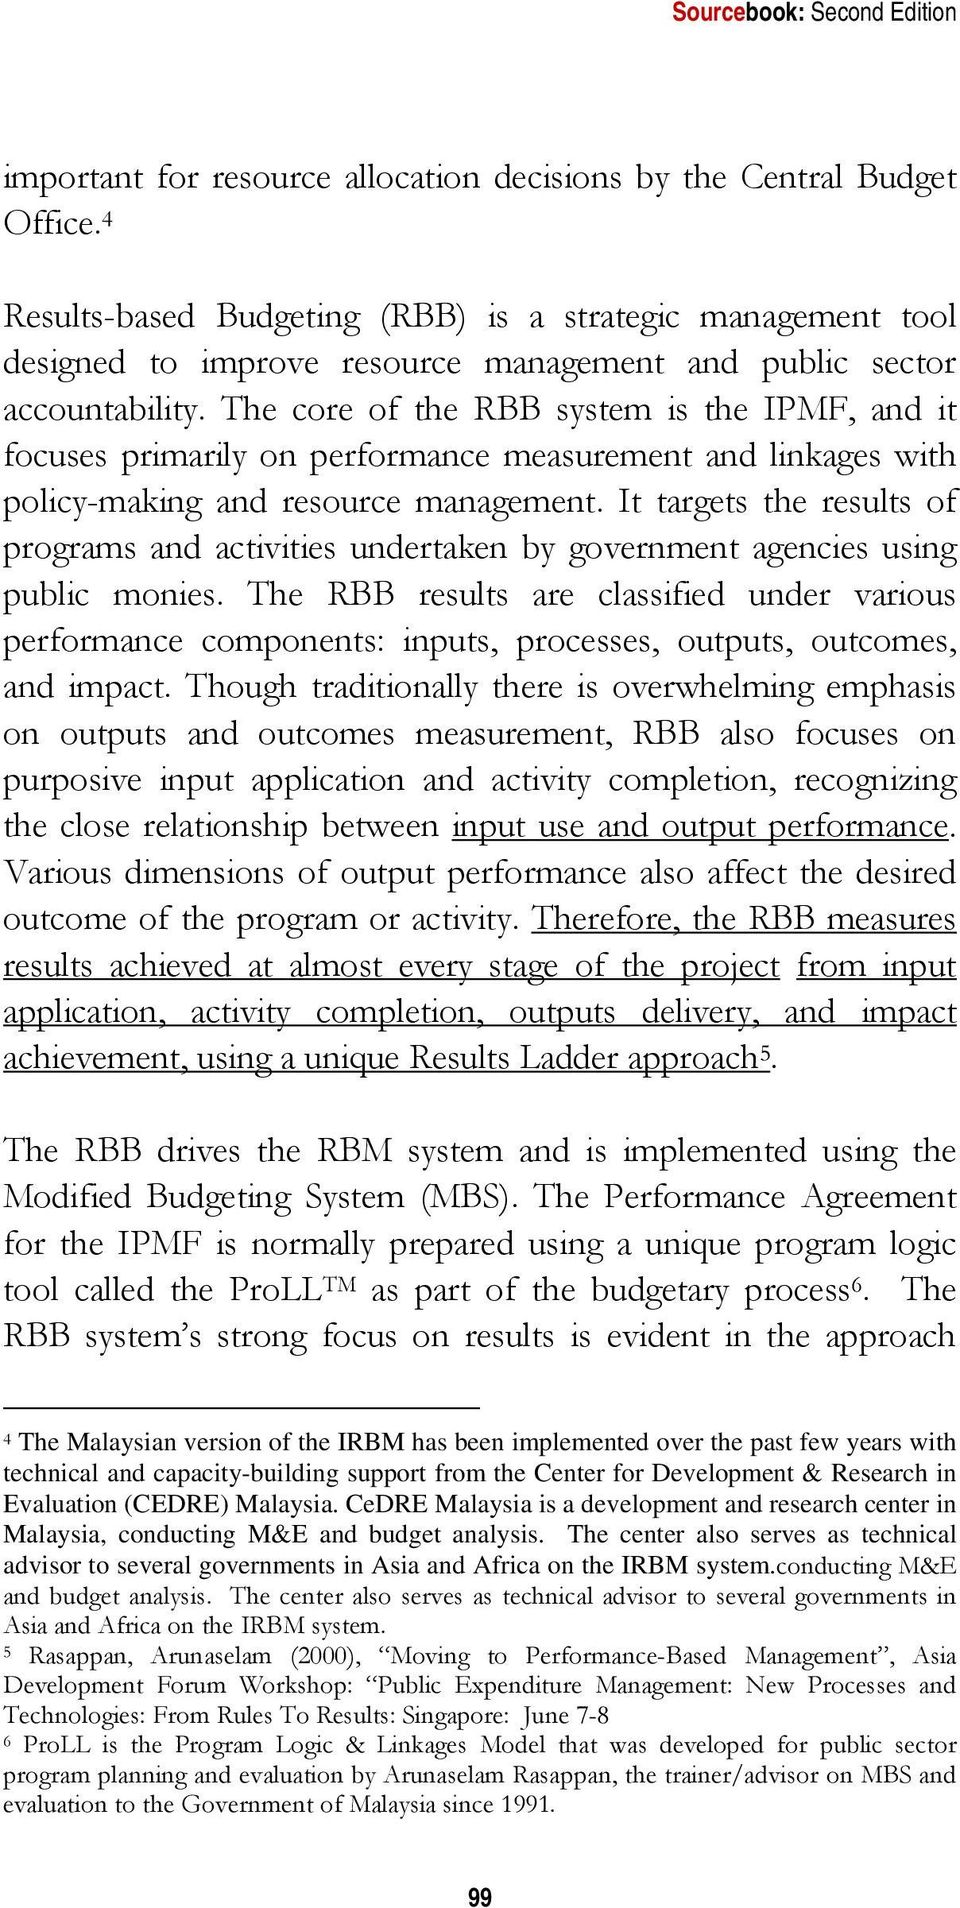 The core of the RBB system is the IPMF, and it focuses primarily on performance measurement and linkages with policy-making and resource management.